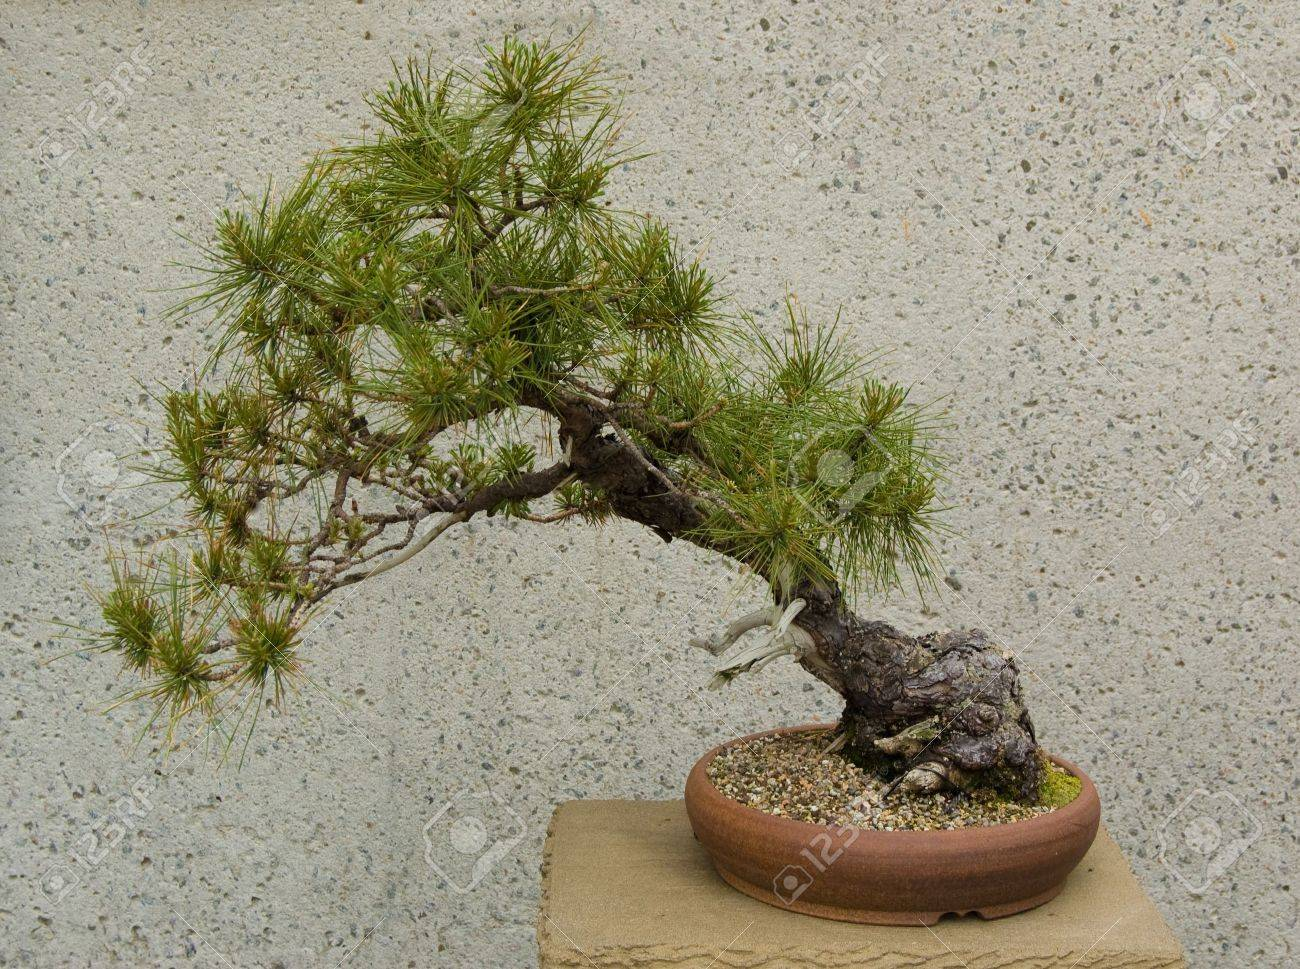 A Very Old Cedar Bonsai Tree Growing In An Indoor Garden Stock Photo Picture And Royalty Free Image Image 3139546